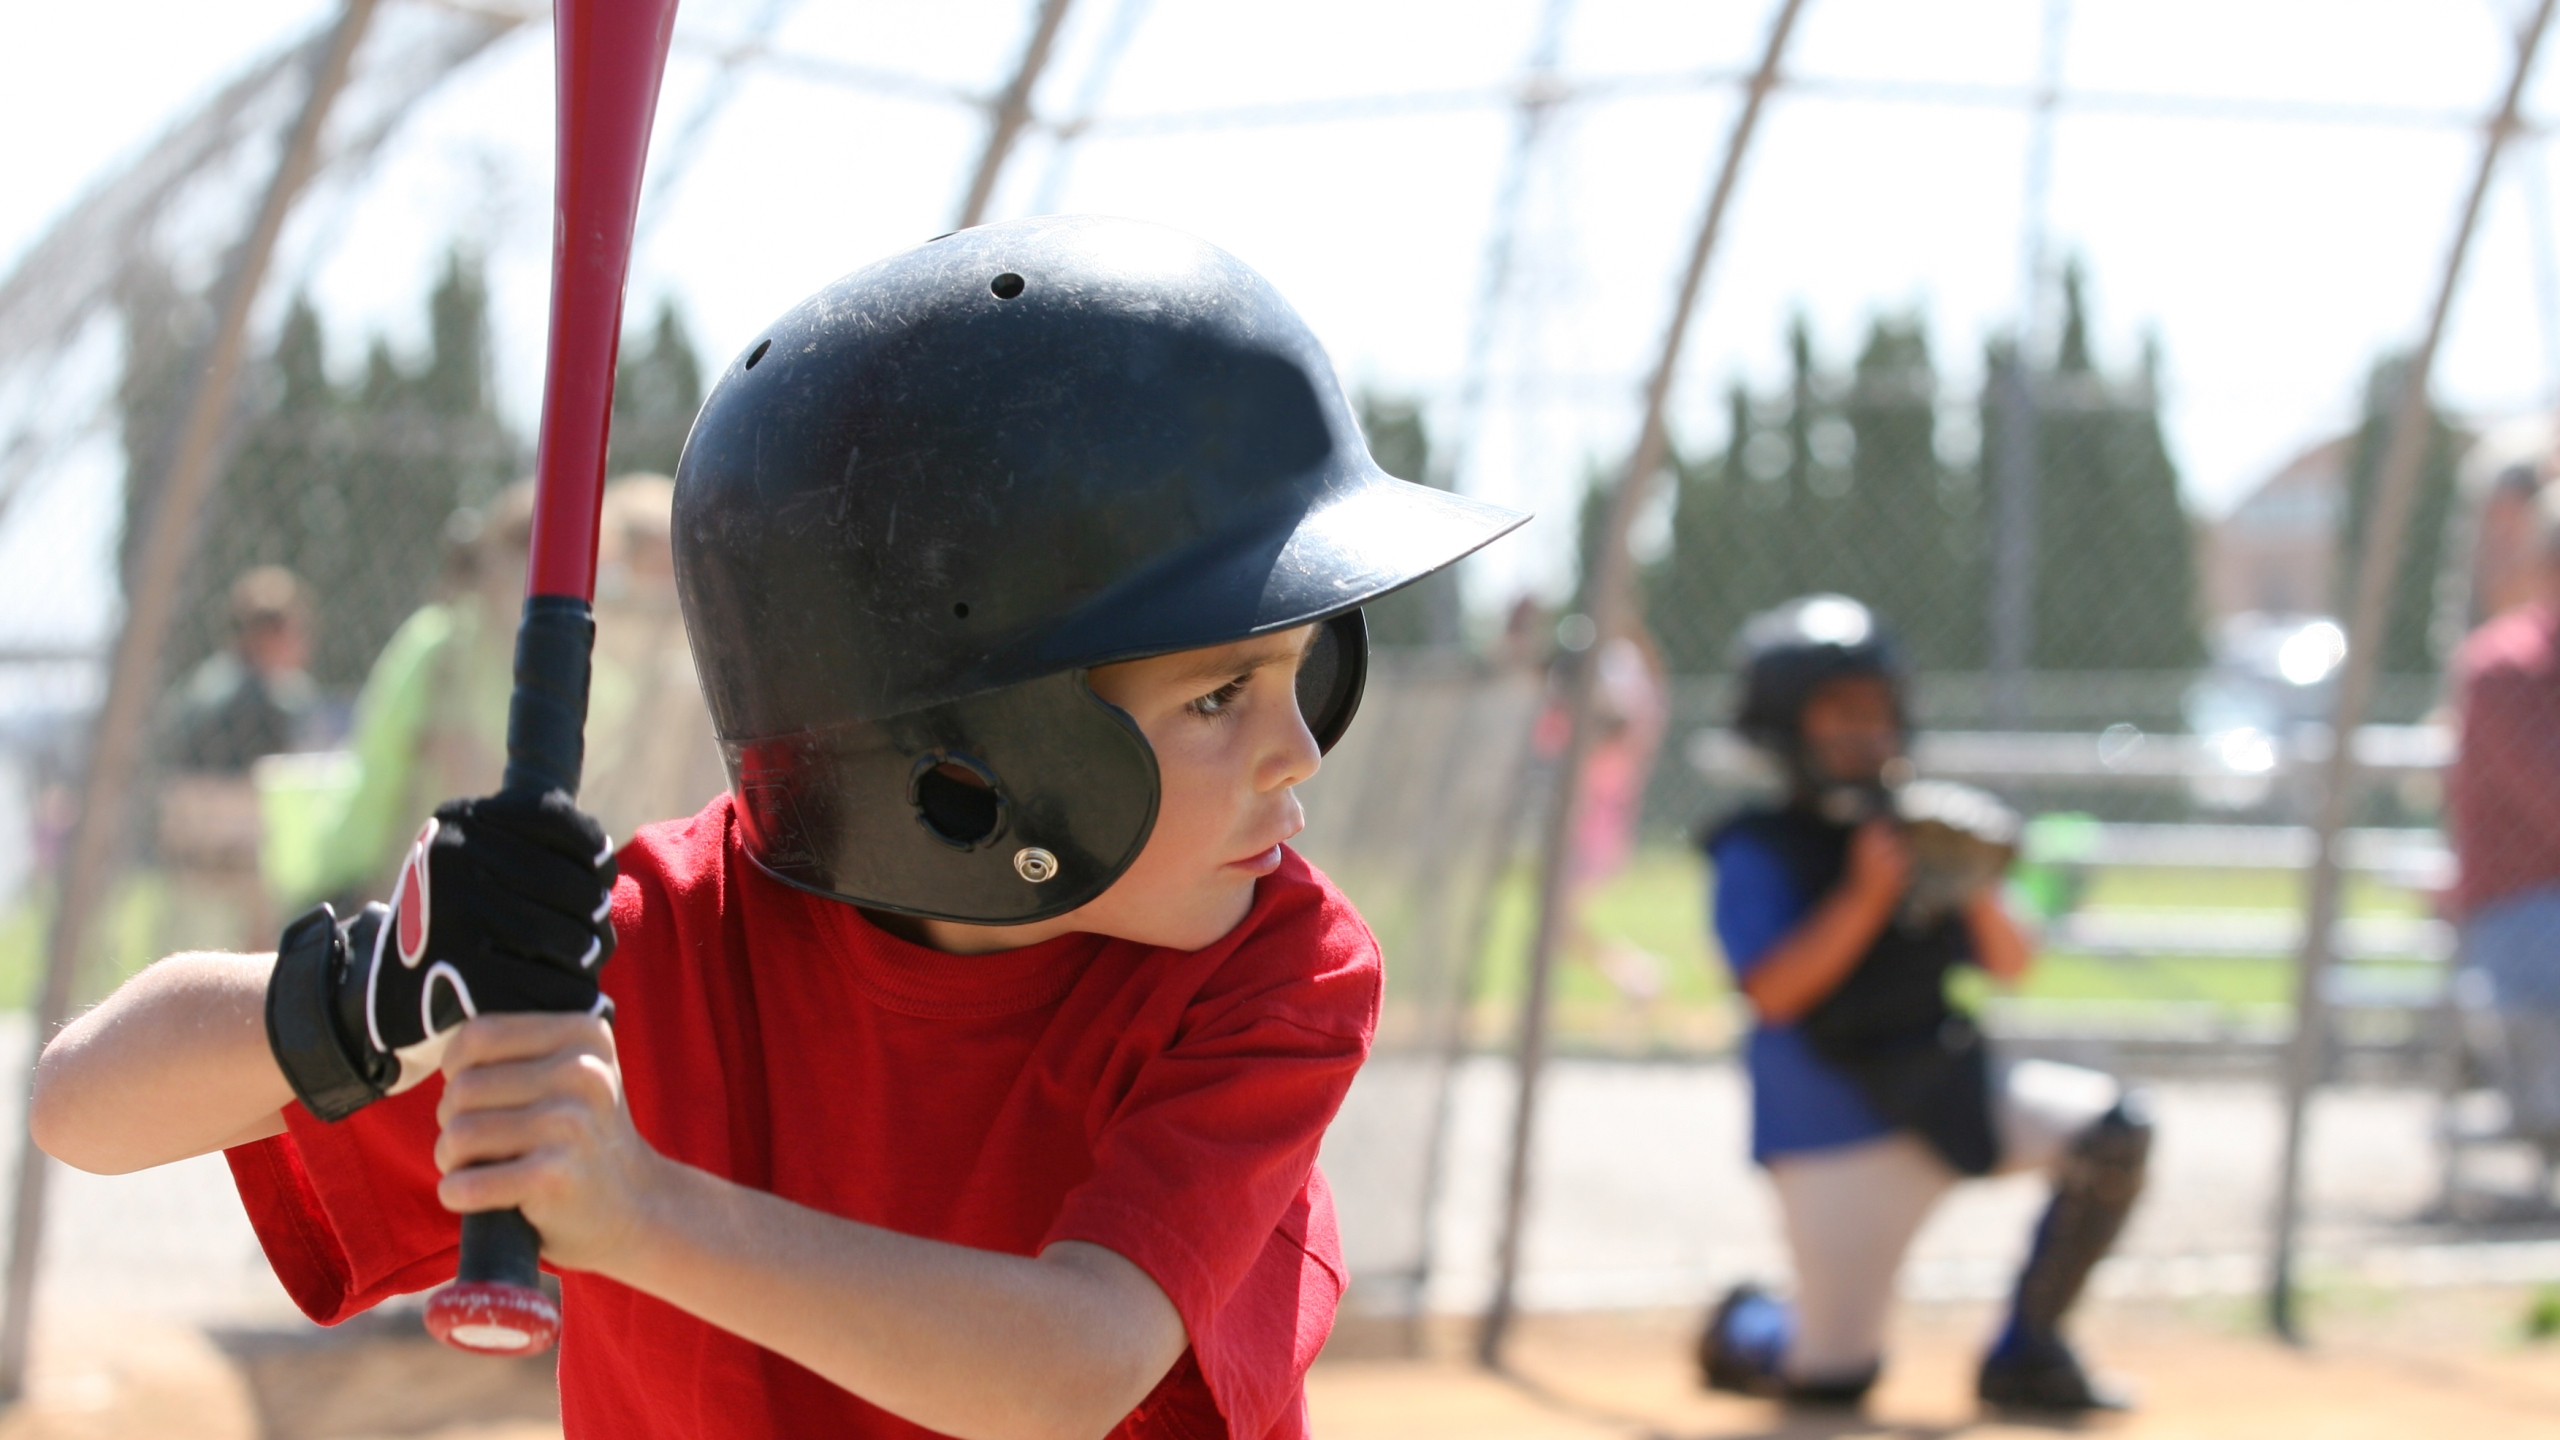 A boy up to bat.